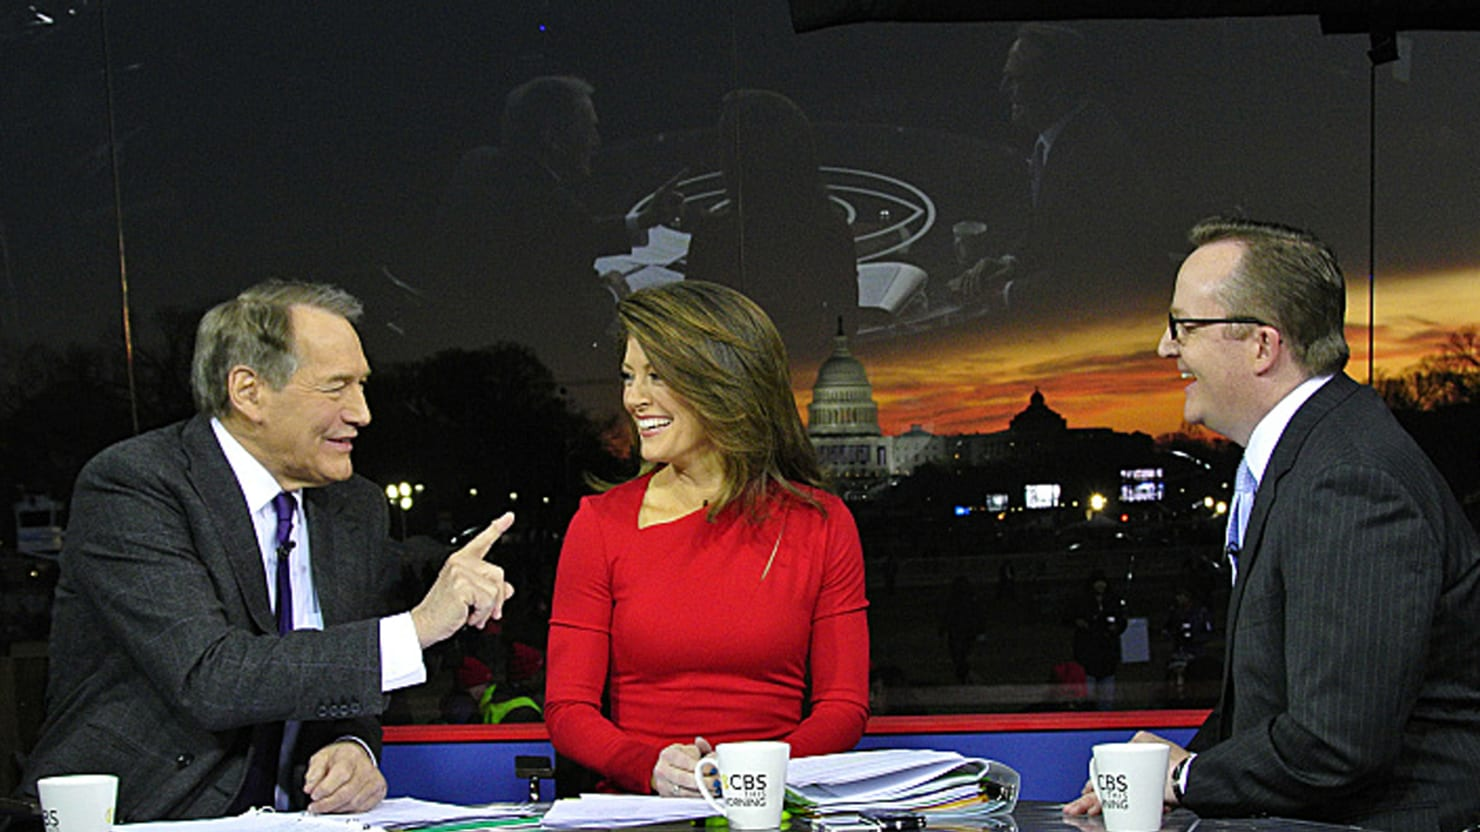 'CBS This Morning' Success Brings With It a Certain Swagger